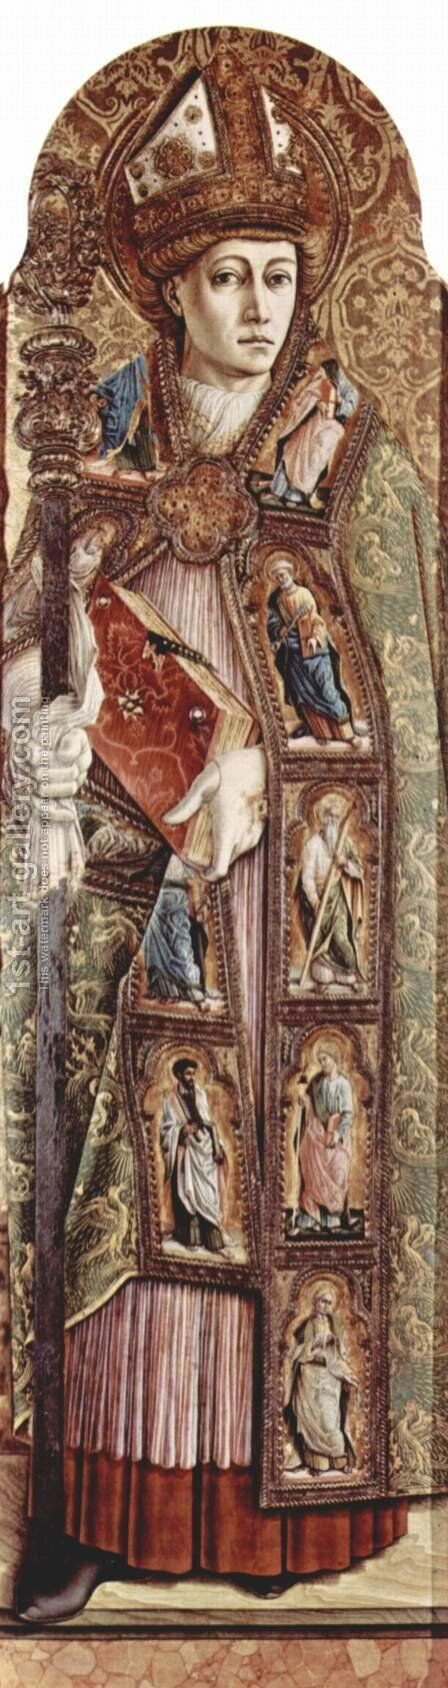 Main altar of the Cathedral of Ascoli, polyptych, right inner panel Holy Emidius by Carlo Crivelli - Reproduction Oil Painting